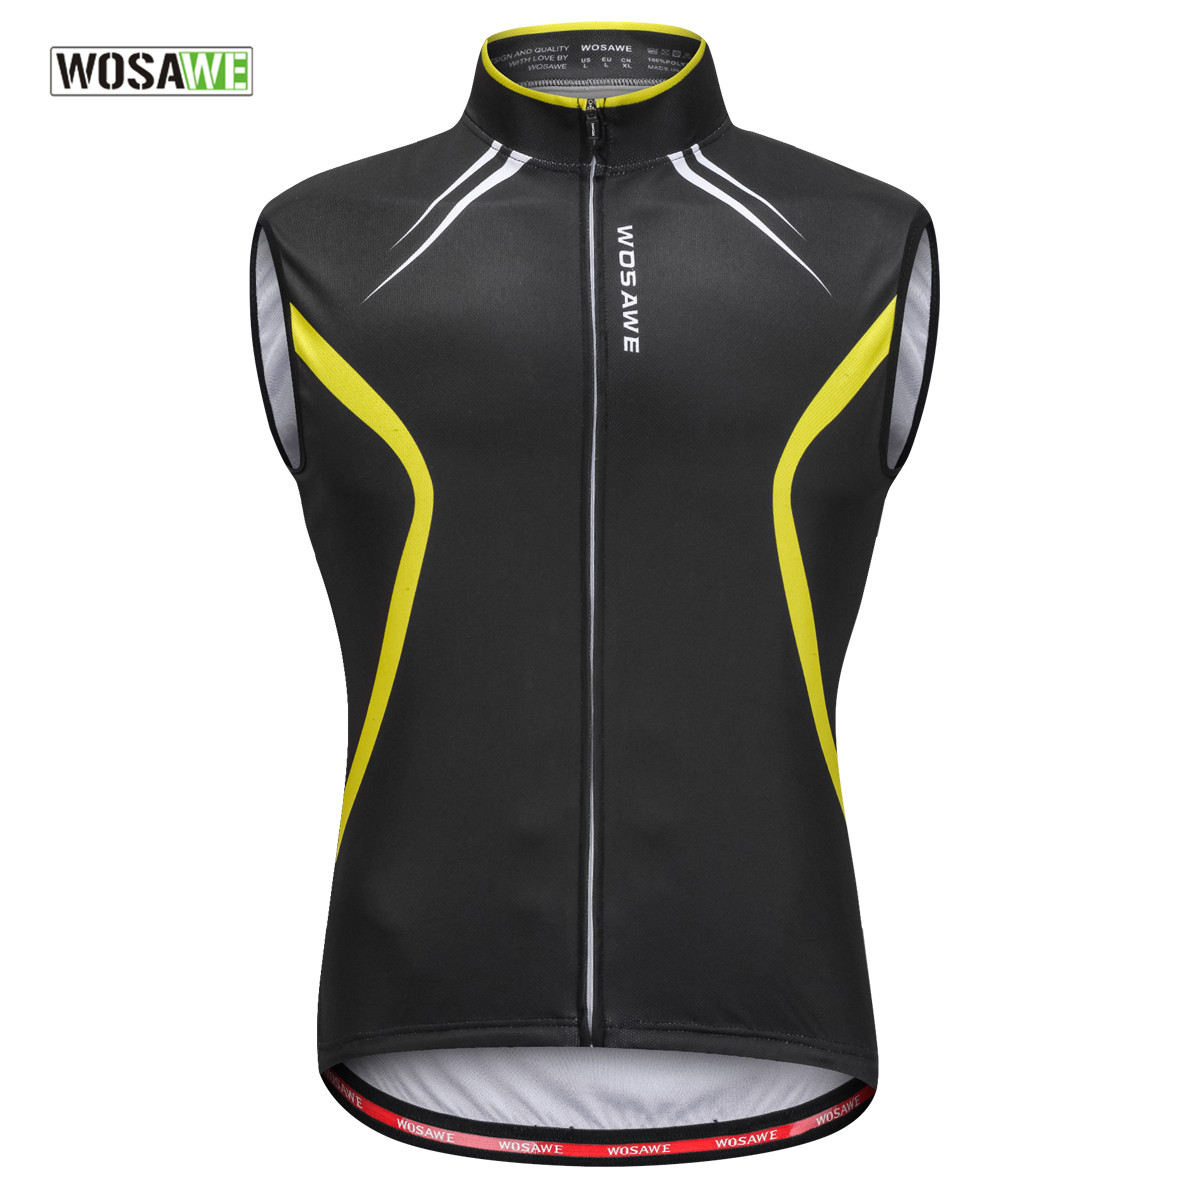 WOSAWE Cycling Vest 2019 Men Summer MTB Bike Bicycle Quick Dry gilet Jerseys Sleeveless Tops